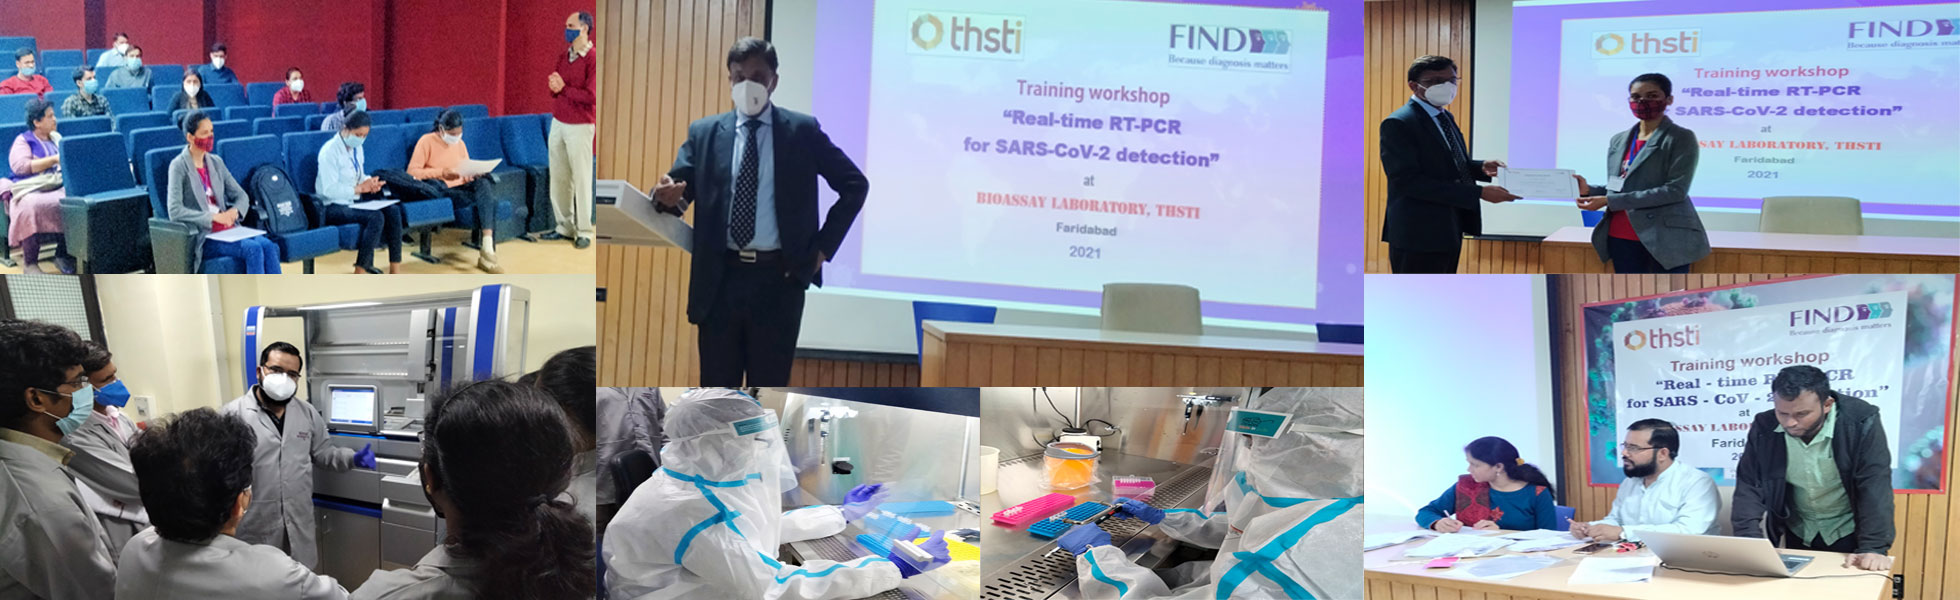 Bioassay Lab completes second Hands-on  FIND-THSTI Real-Time RT-PCR Workshop on SARS-CoV 2 detection